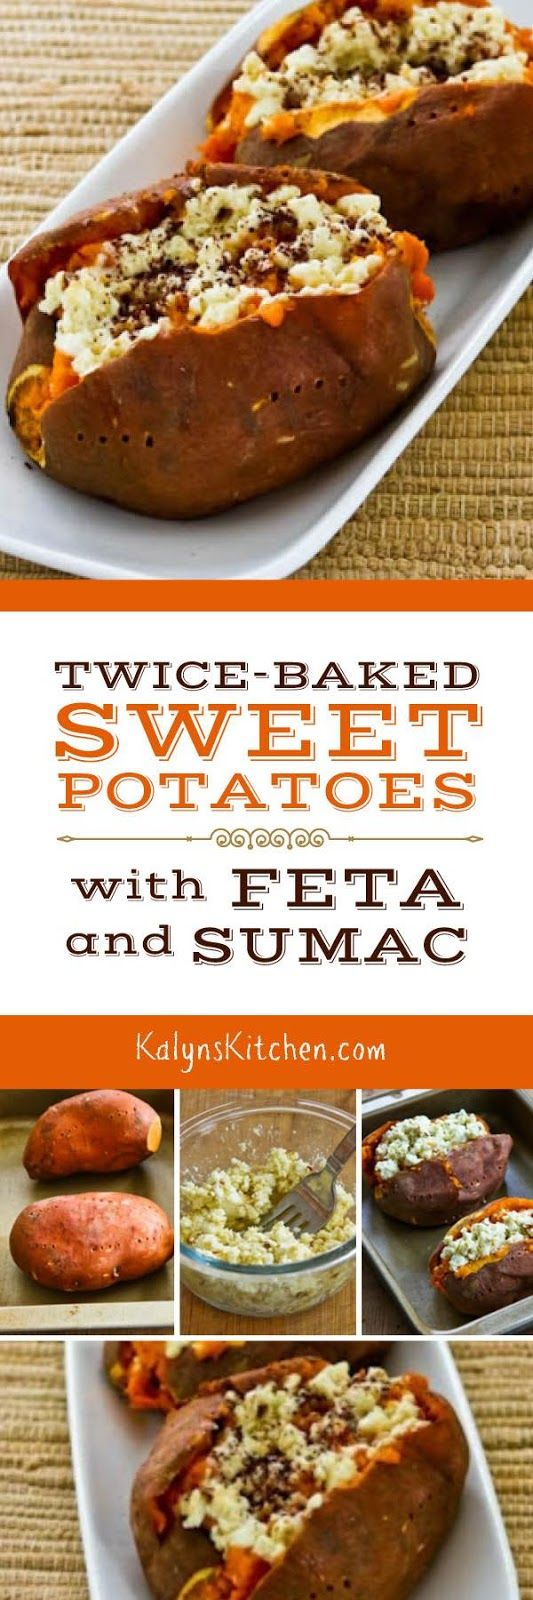 Twice-Baked Sweet Potatoes with Feta and Sumac are a tasty side dish ...